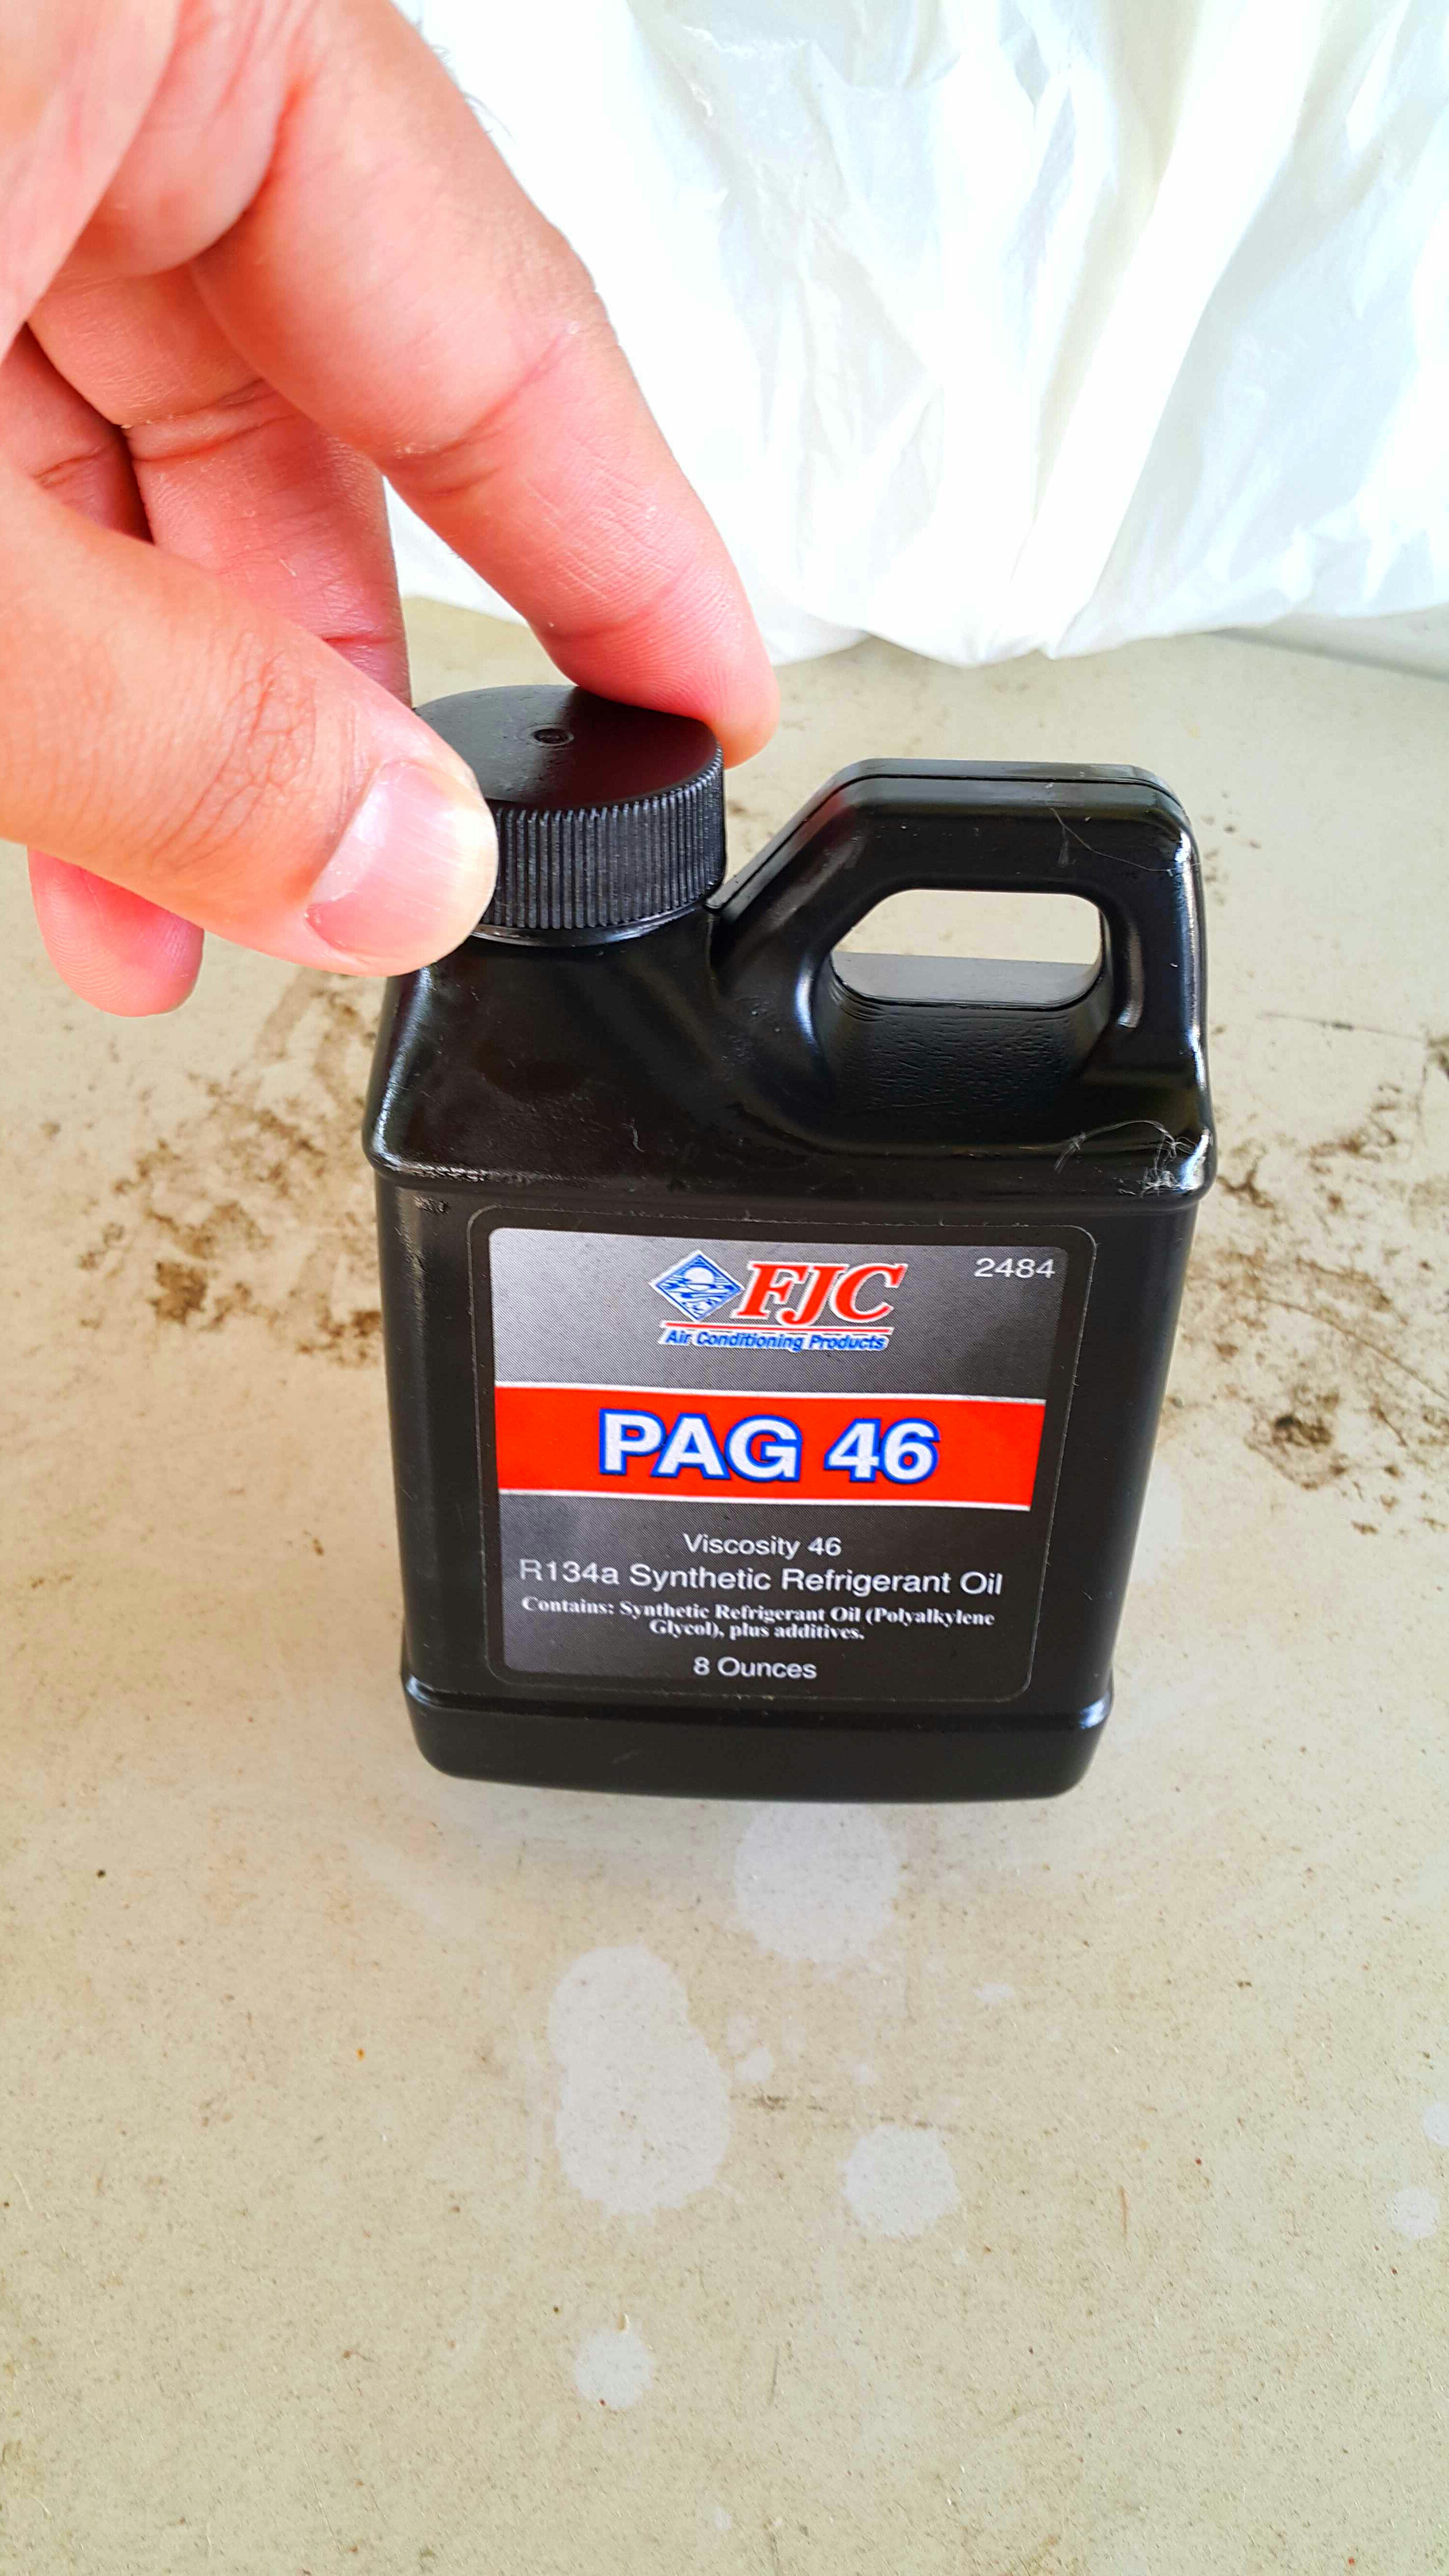 Injecting Pag Oil Into a Car's Air Conditioning System  : 4